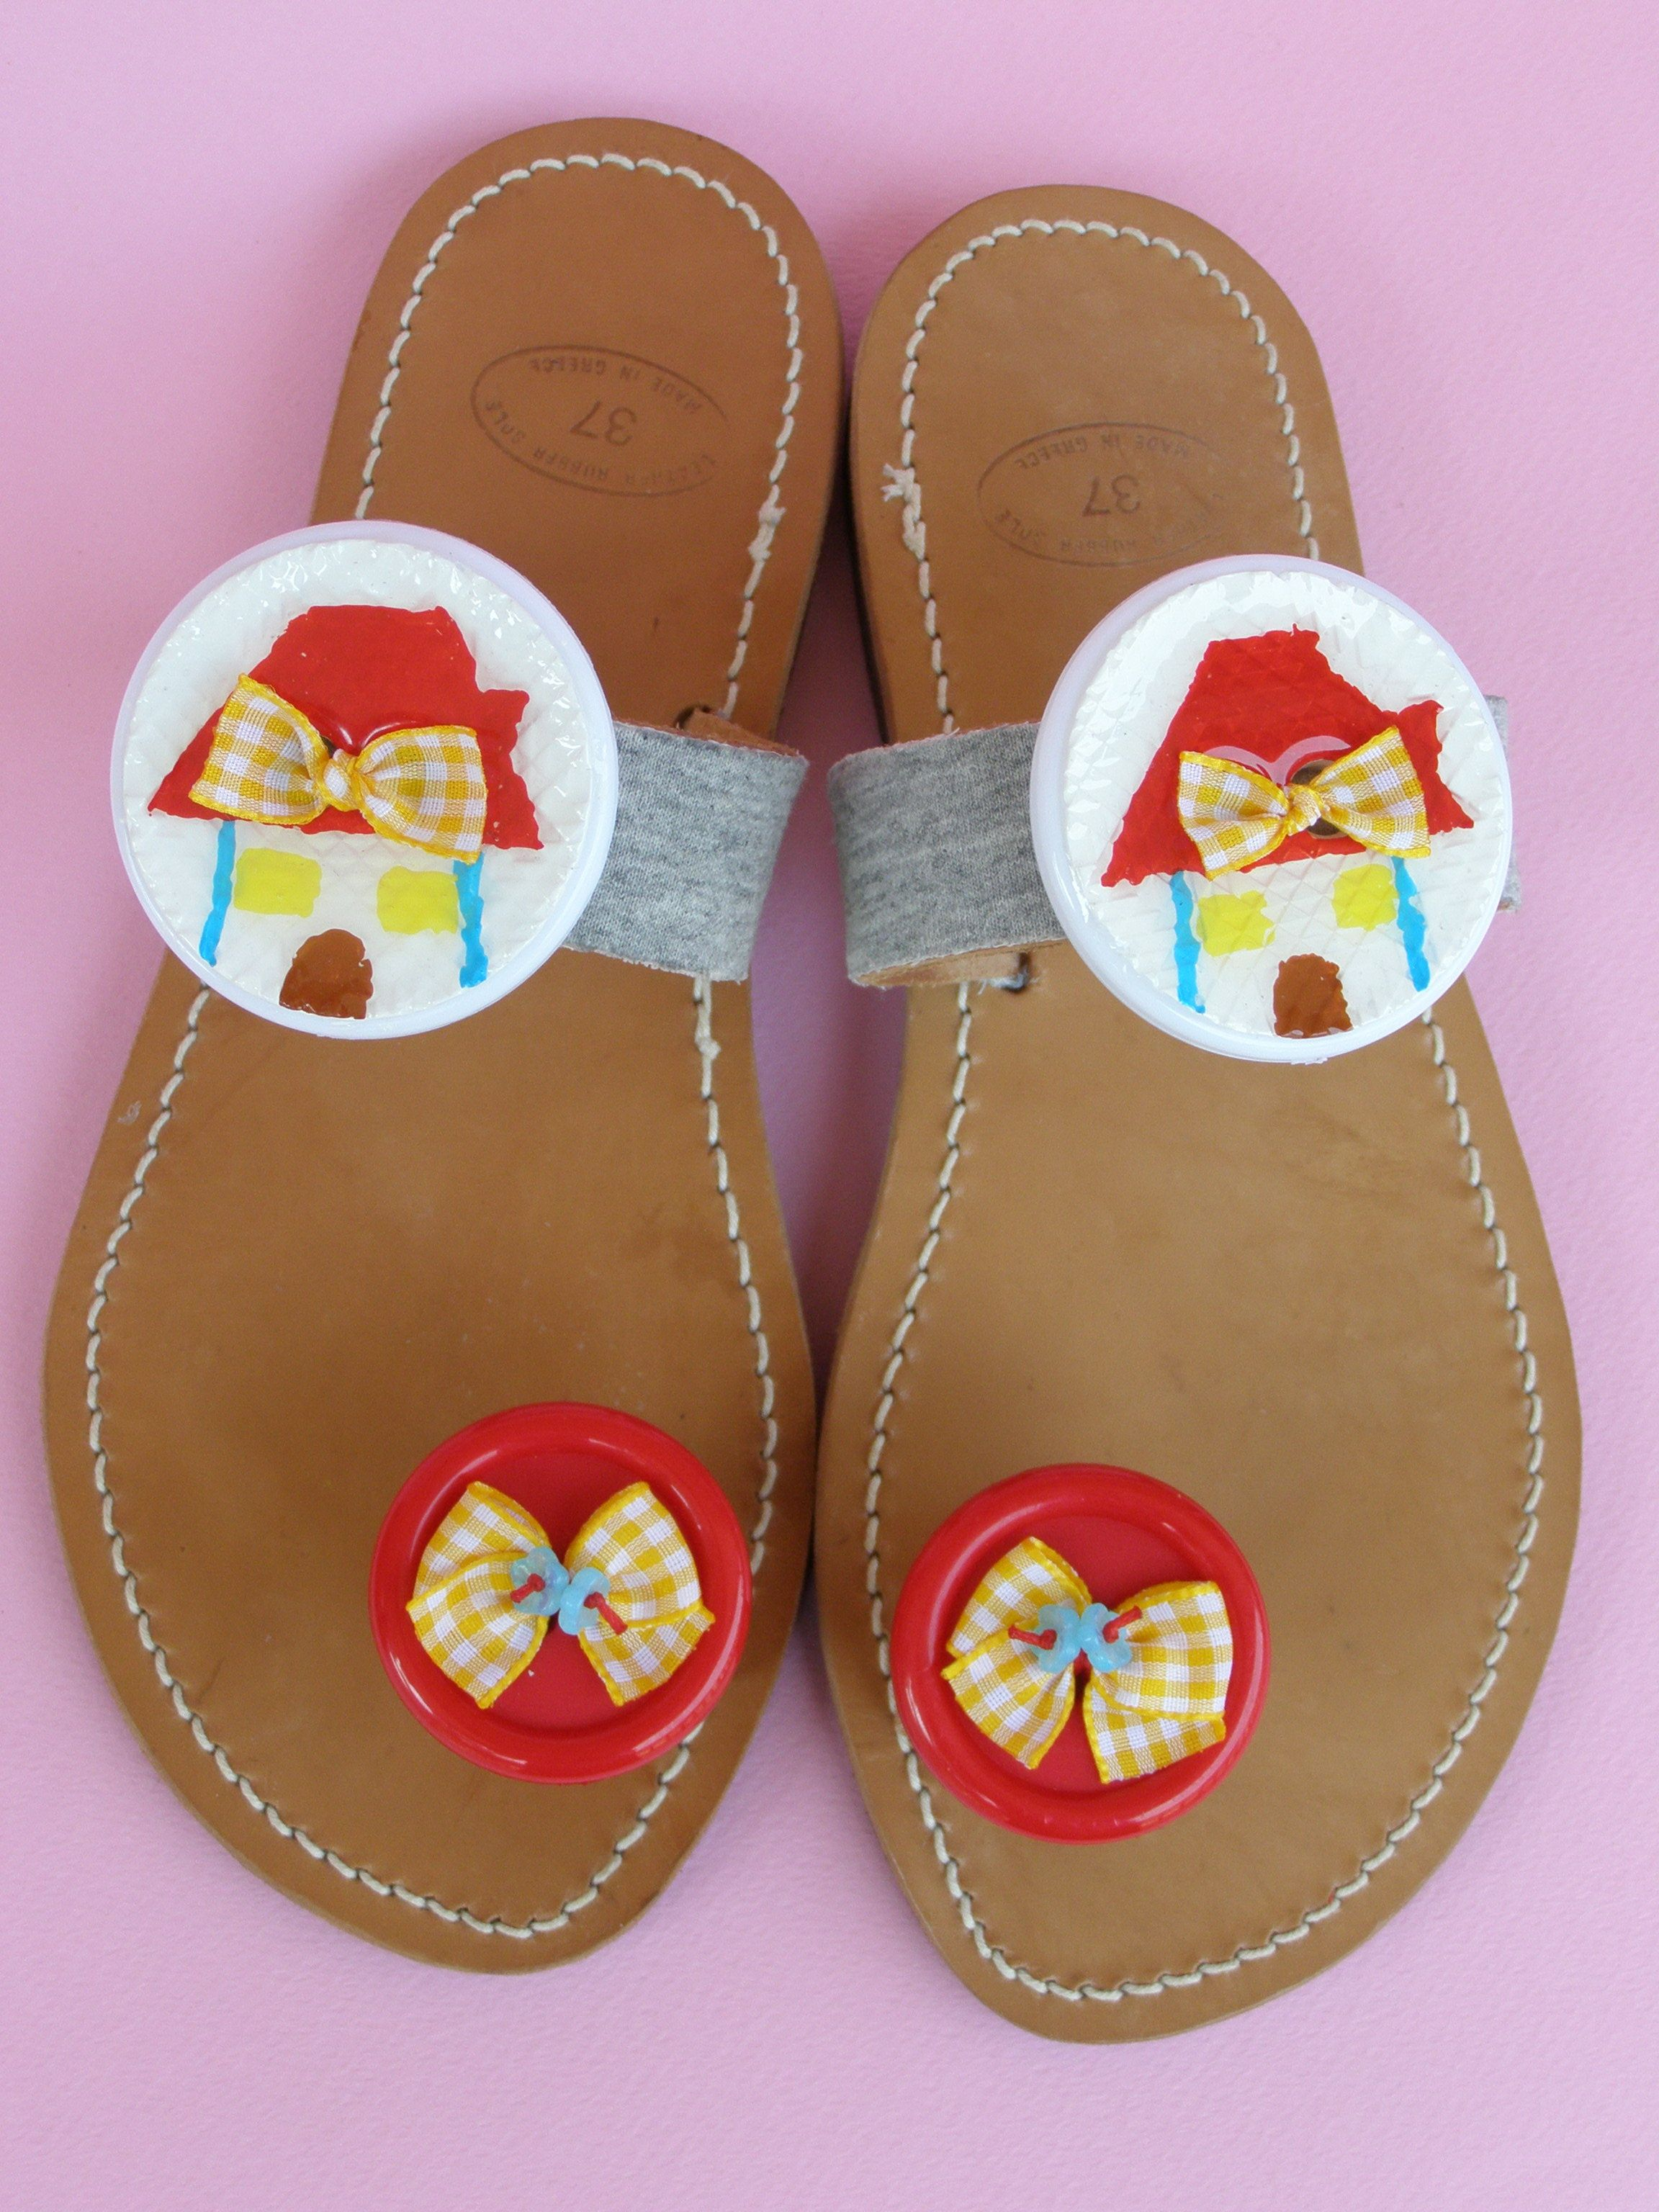 Handmade leather sandals with handpainted buttons,glass beads and French ribbons.